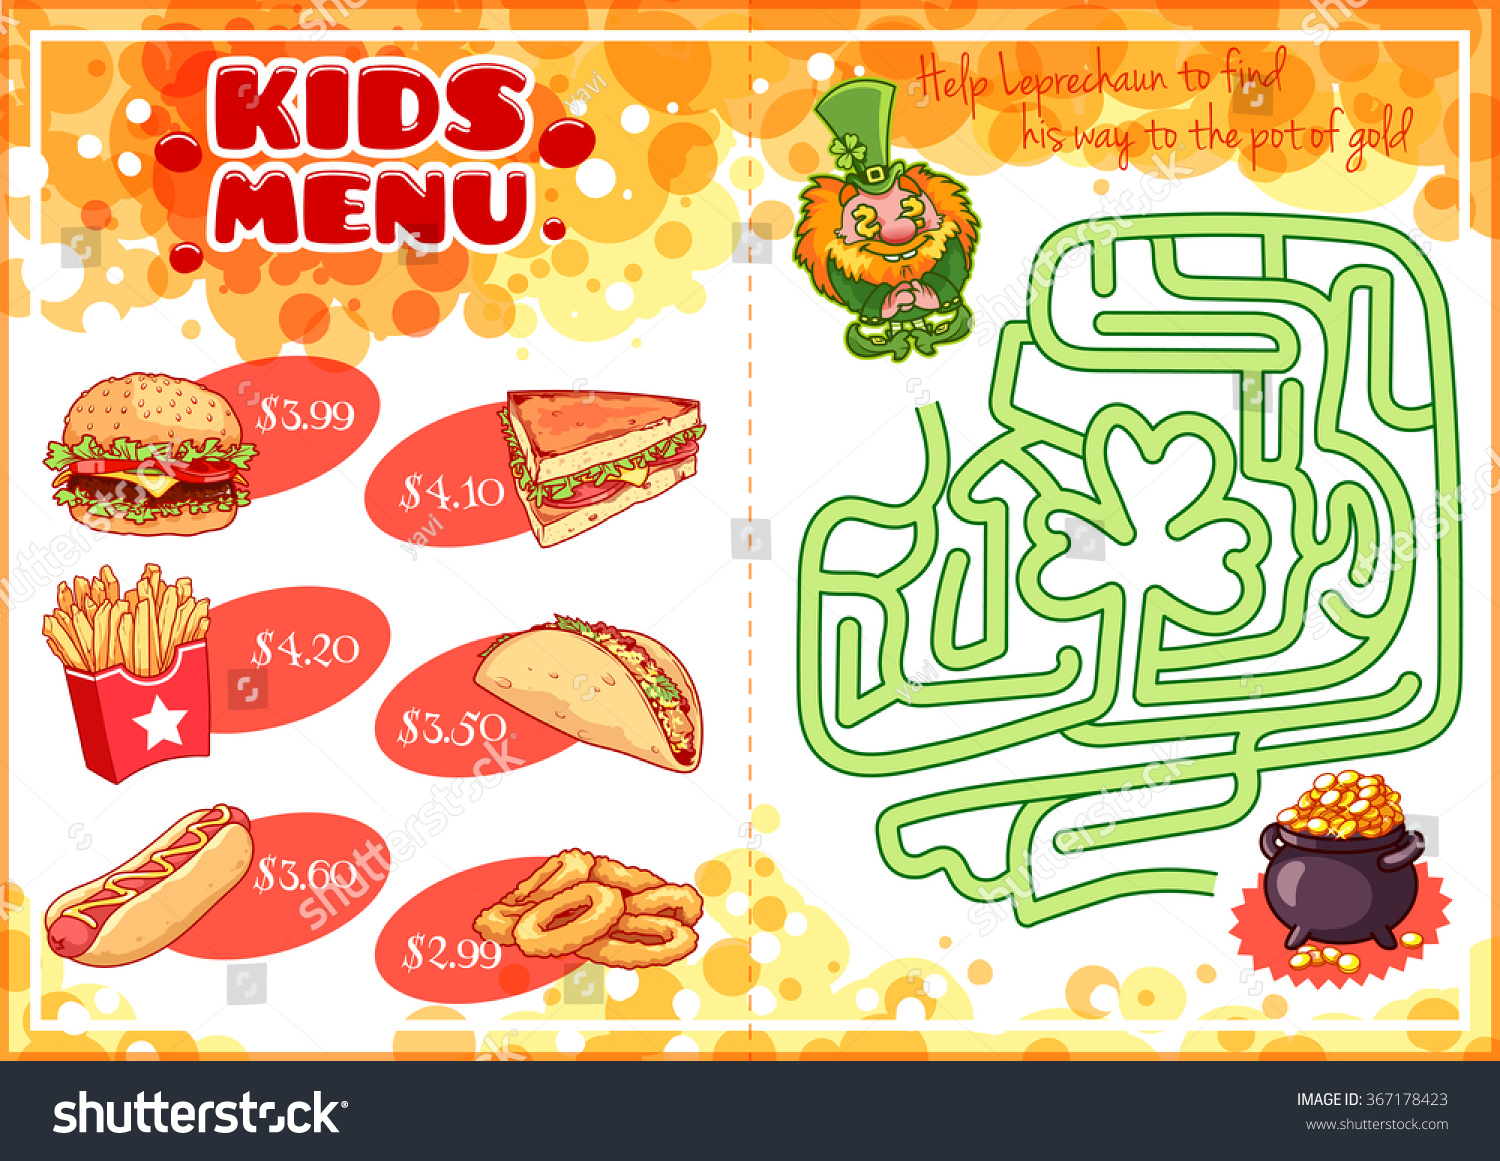 Kids Menu For Fast Food With Maze Game Hamburger Hot Dog Sandwich Tacos French Fries And